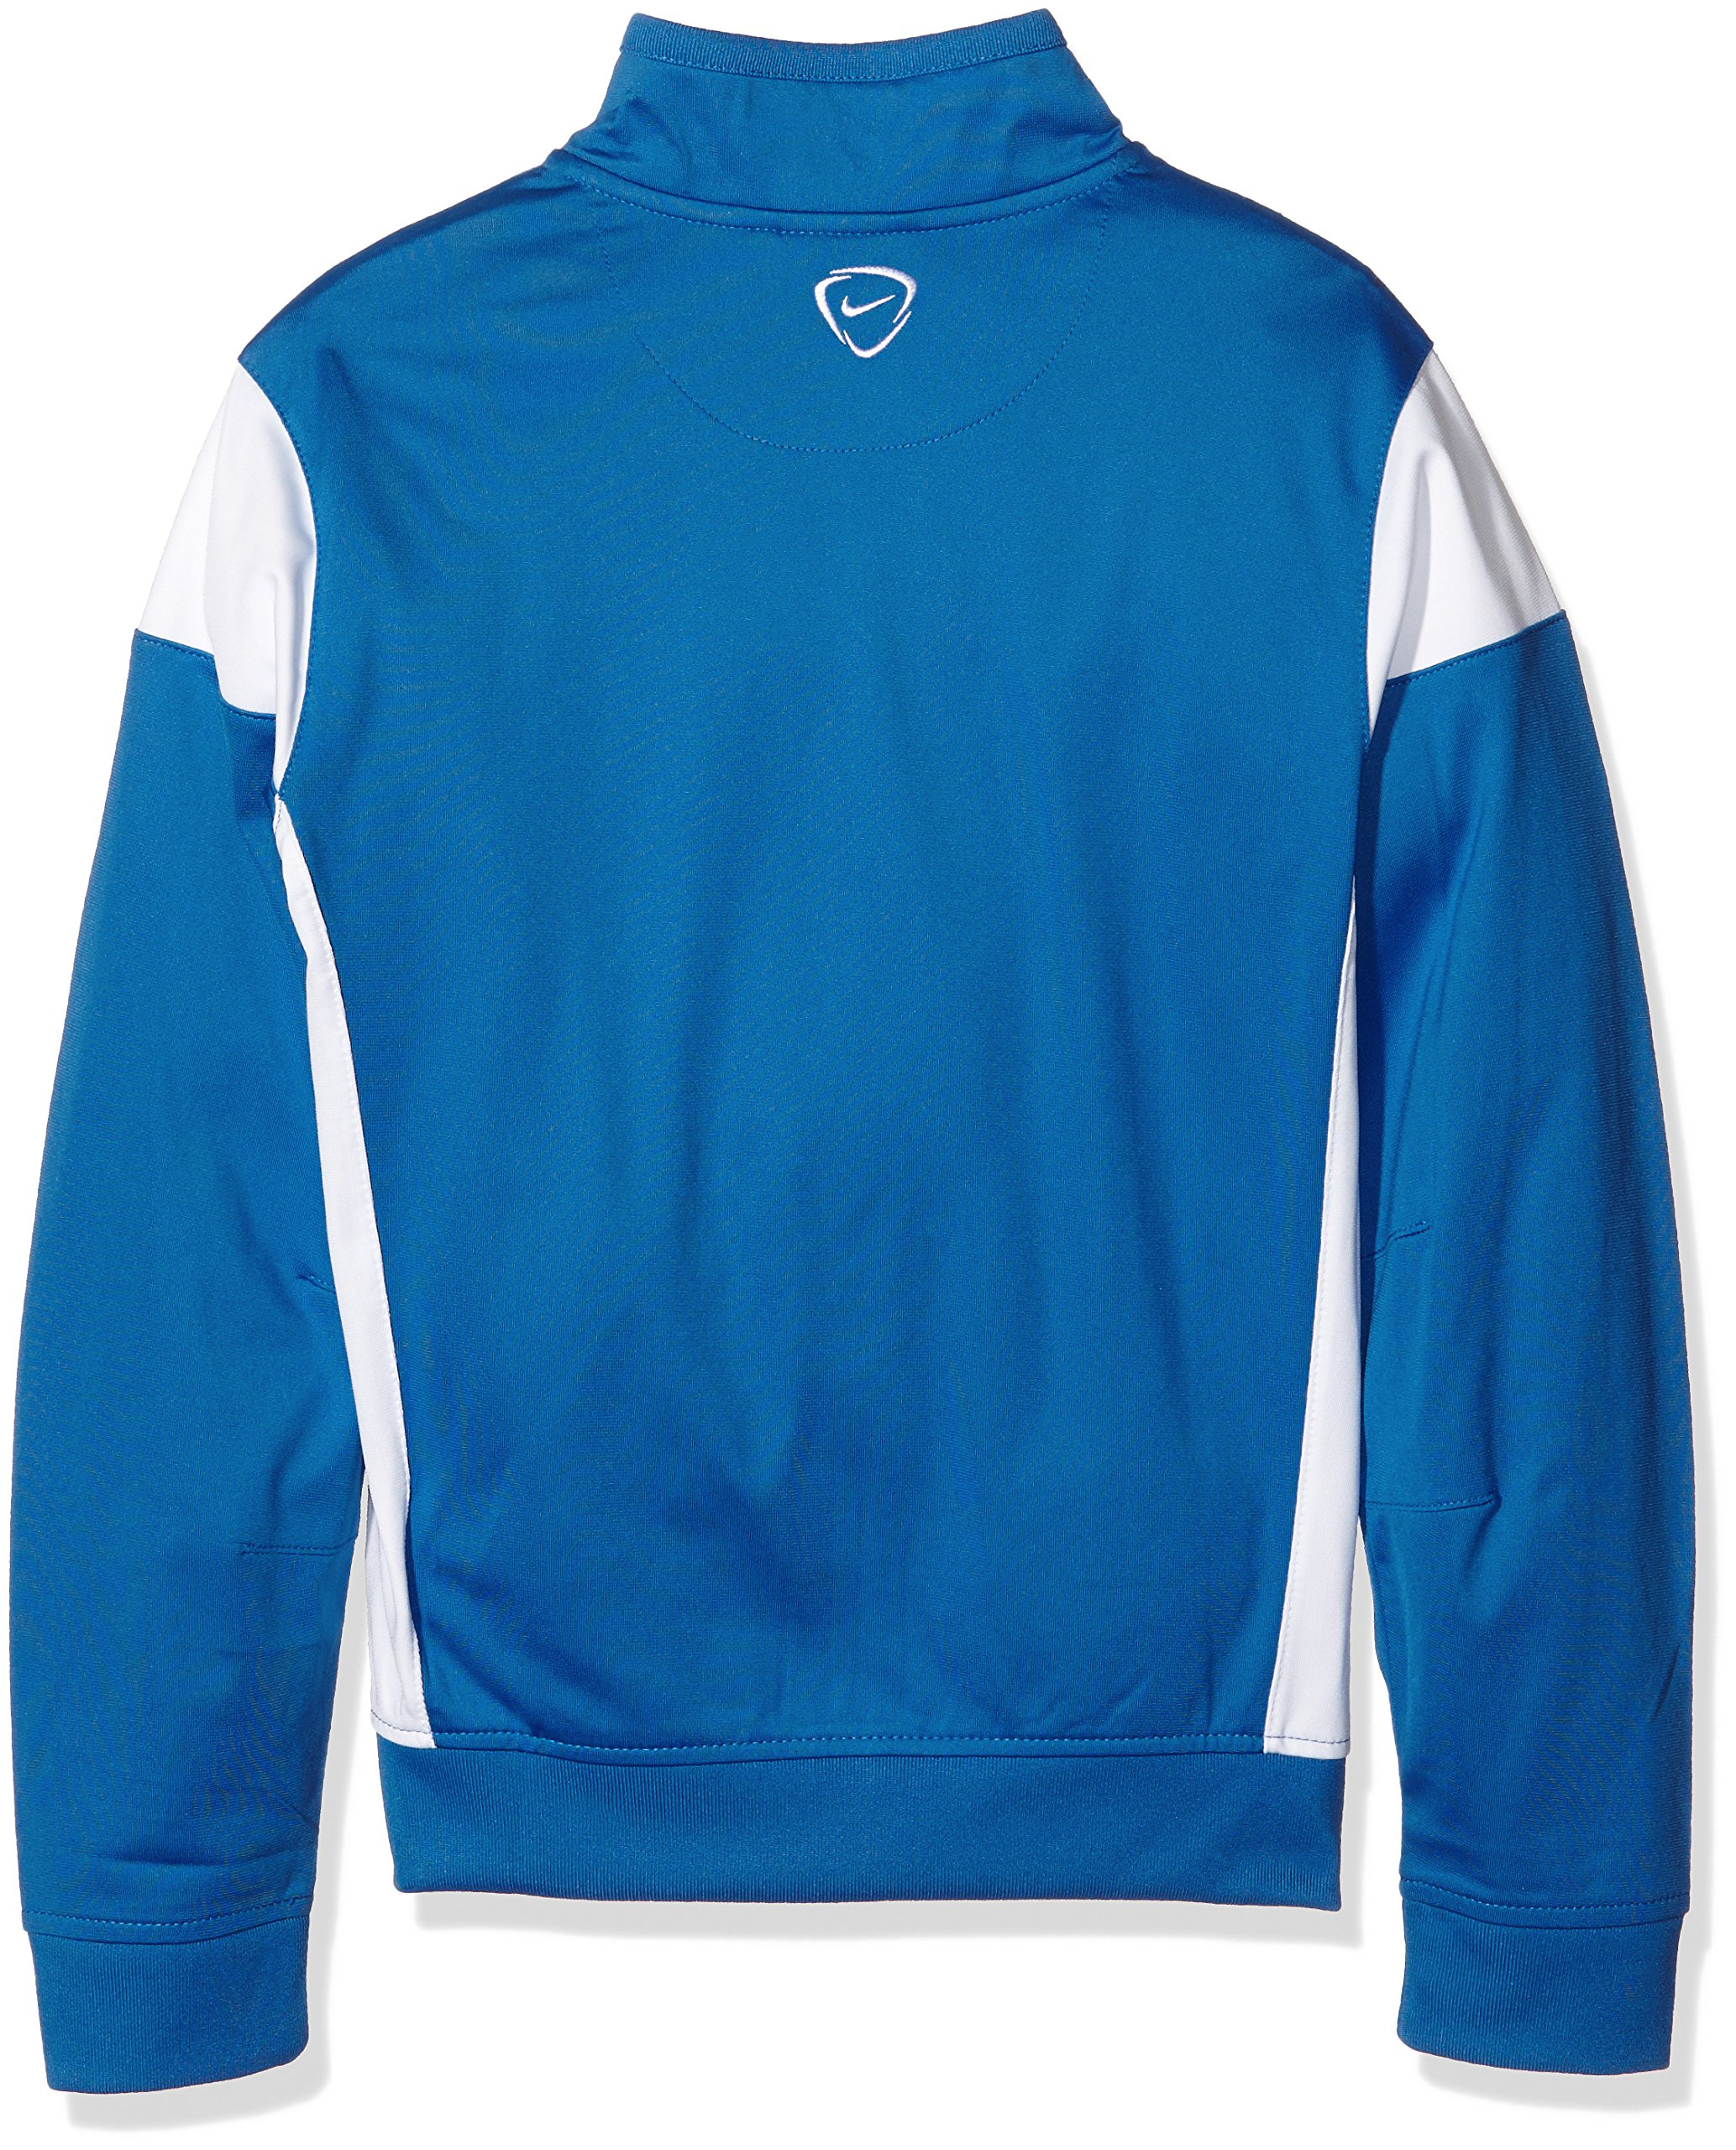 Nike Academy 14 Sideline Knit Jacket Royal/White YL